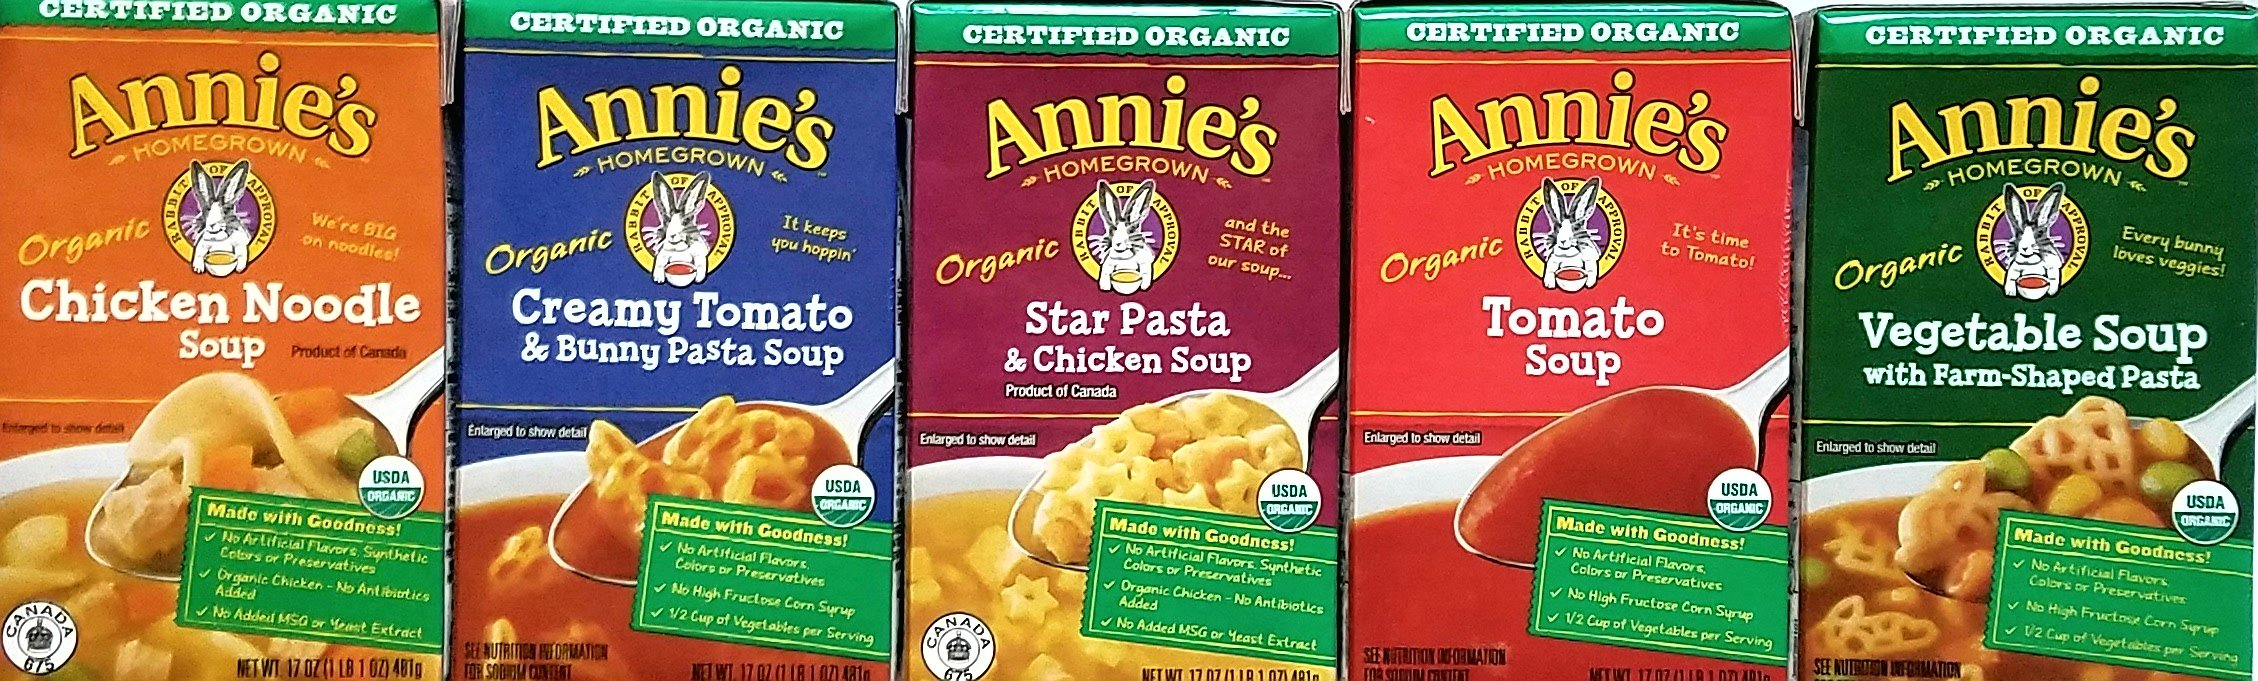 Annie's Organic Soups - Chicken Noodle, Creamy Tomato & Bunny Pasta, Star Pasta & Chicken, Tomato, Vegetable With Farm-Shaped Pasta - 17 Oz Each - Variety Pack of 5